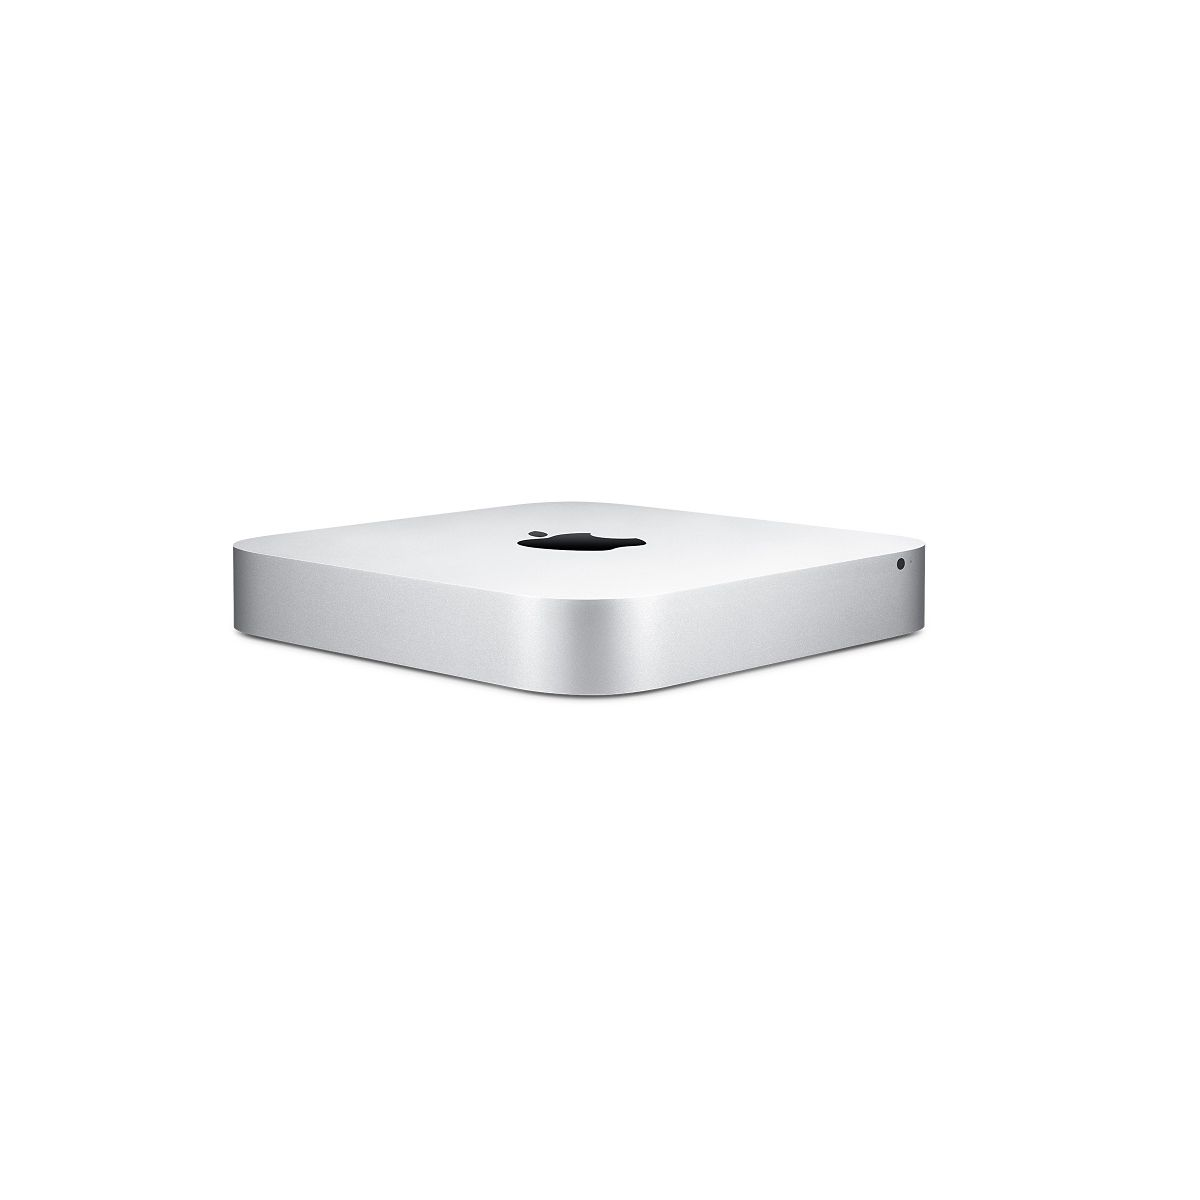 Ordinateur apple mac mini 2.8ghz 8go 1to fusion drive